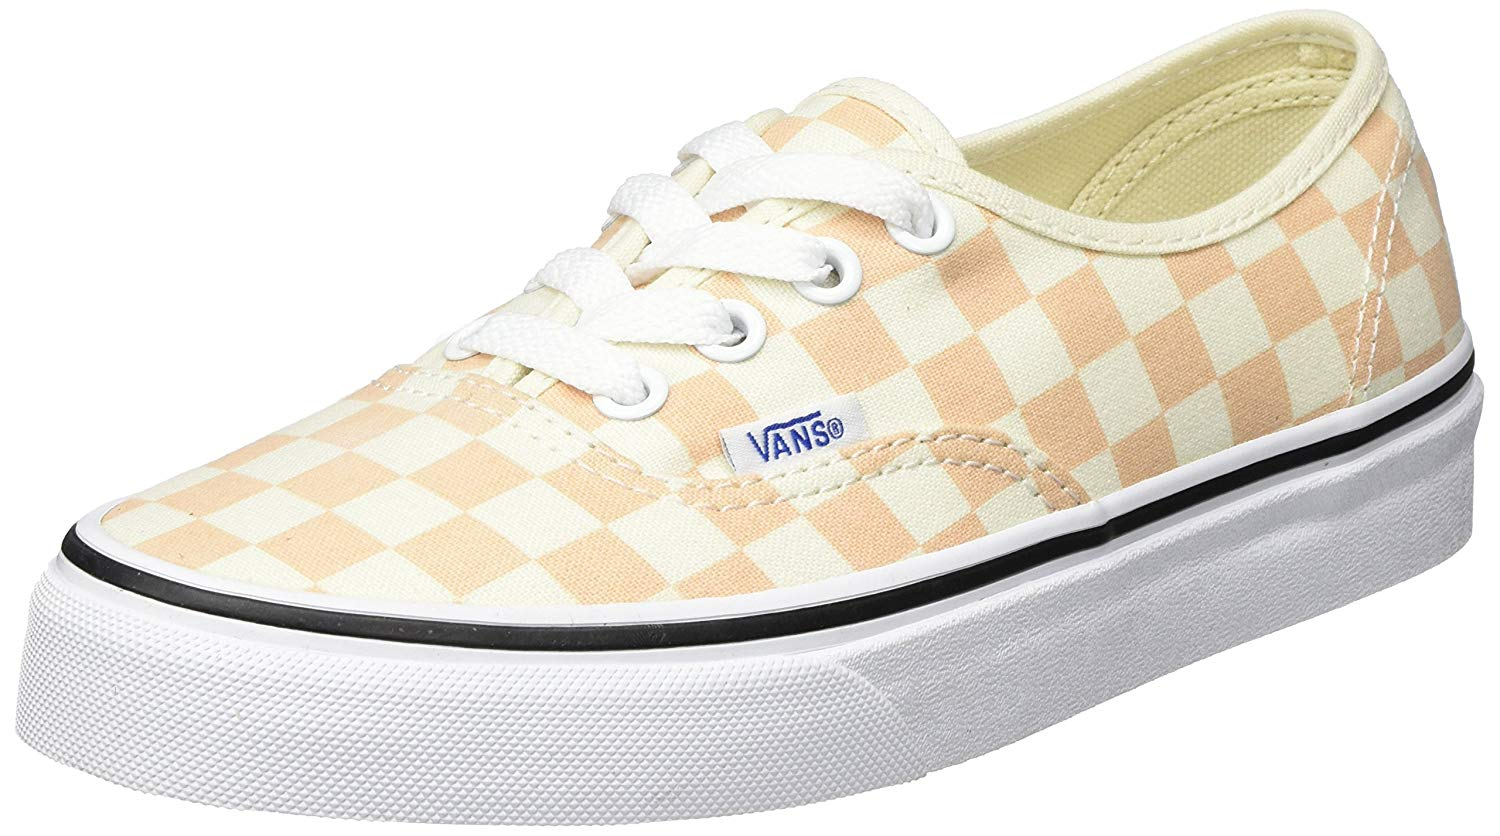 Vans Authentic Checkerboard Apricot Ice Men's Skate Shoes Size 9